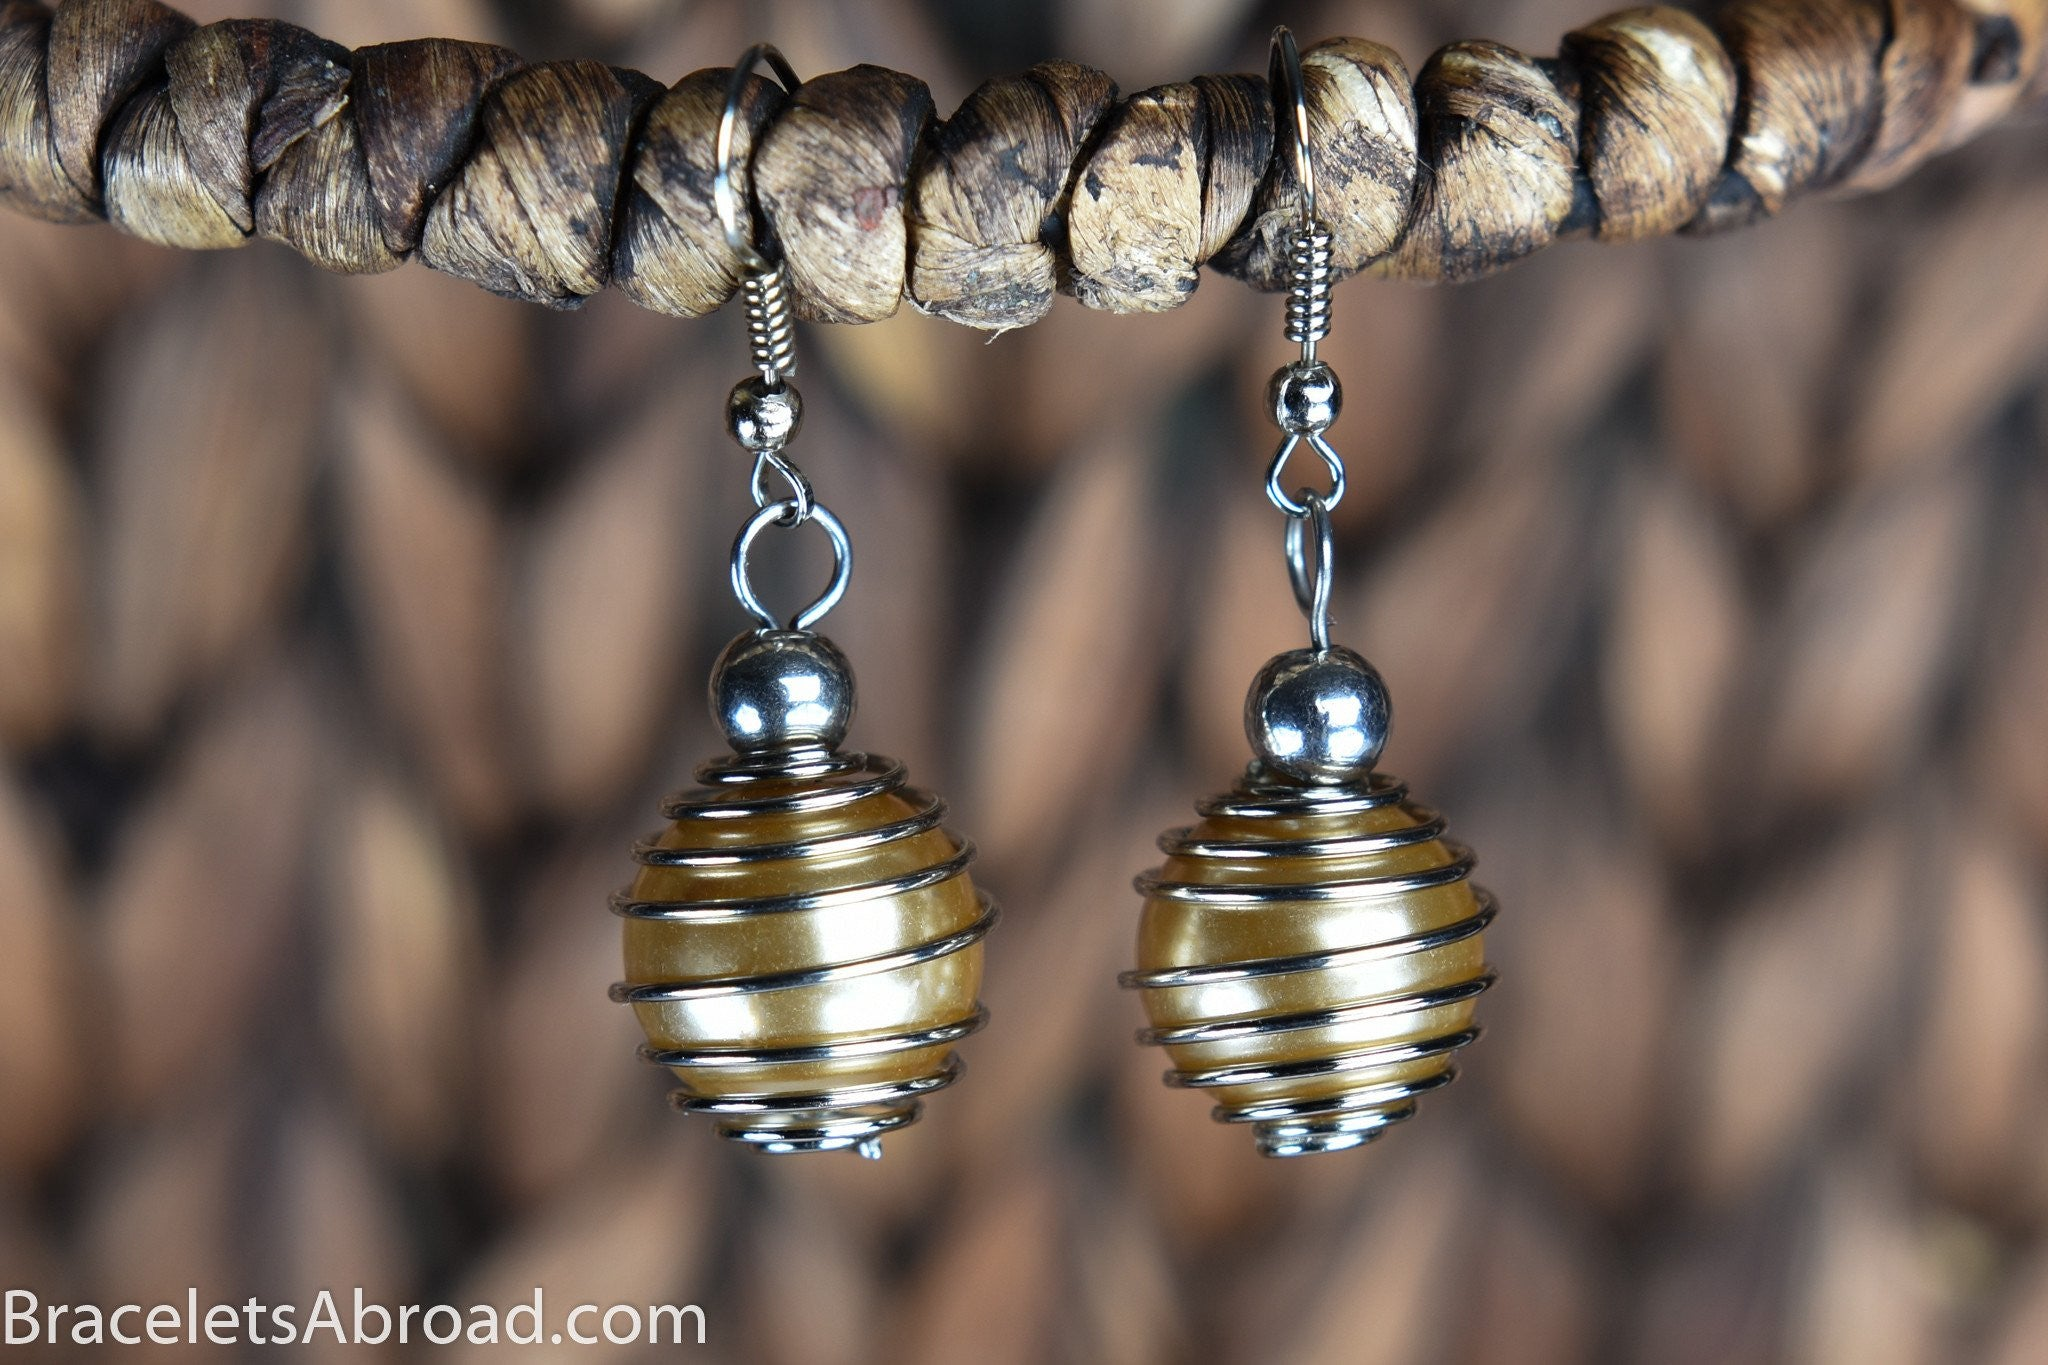 Jewelry Champagne Gold Earrings Handmade From Bali Indonesia With Pearl  Charms Wrapped In Metal